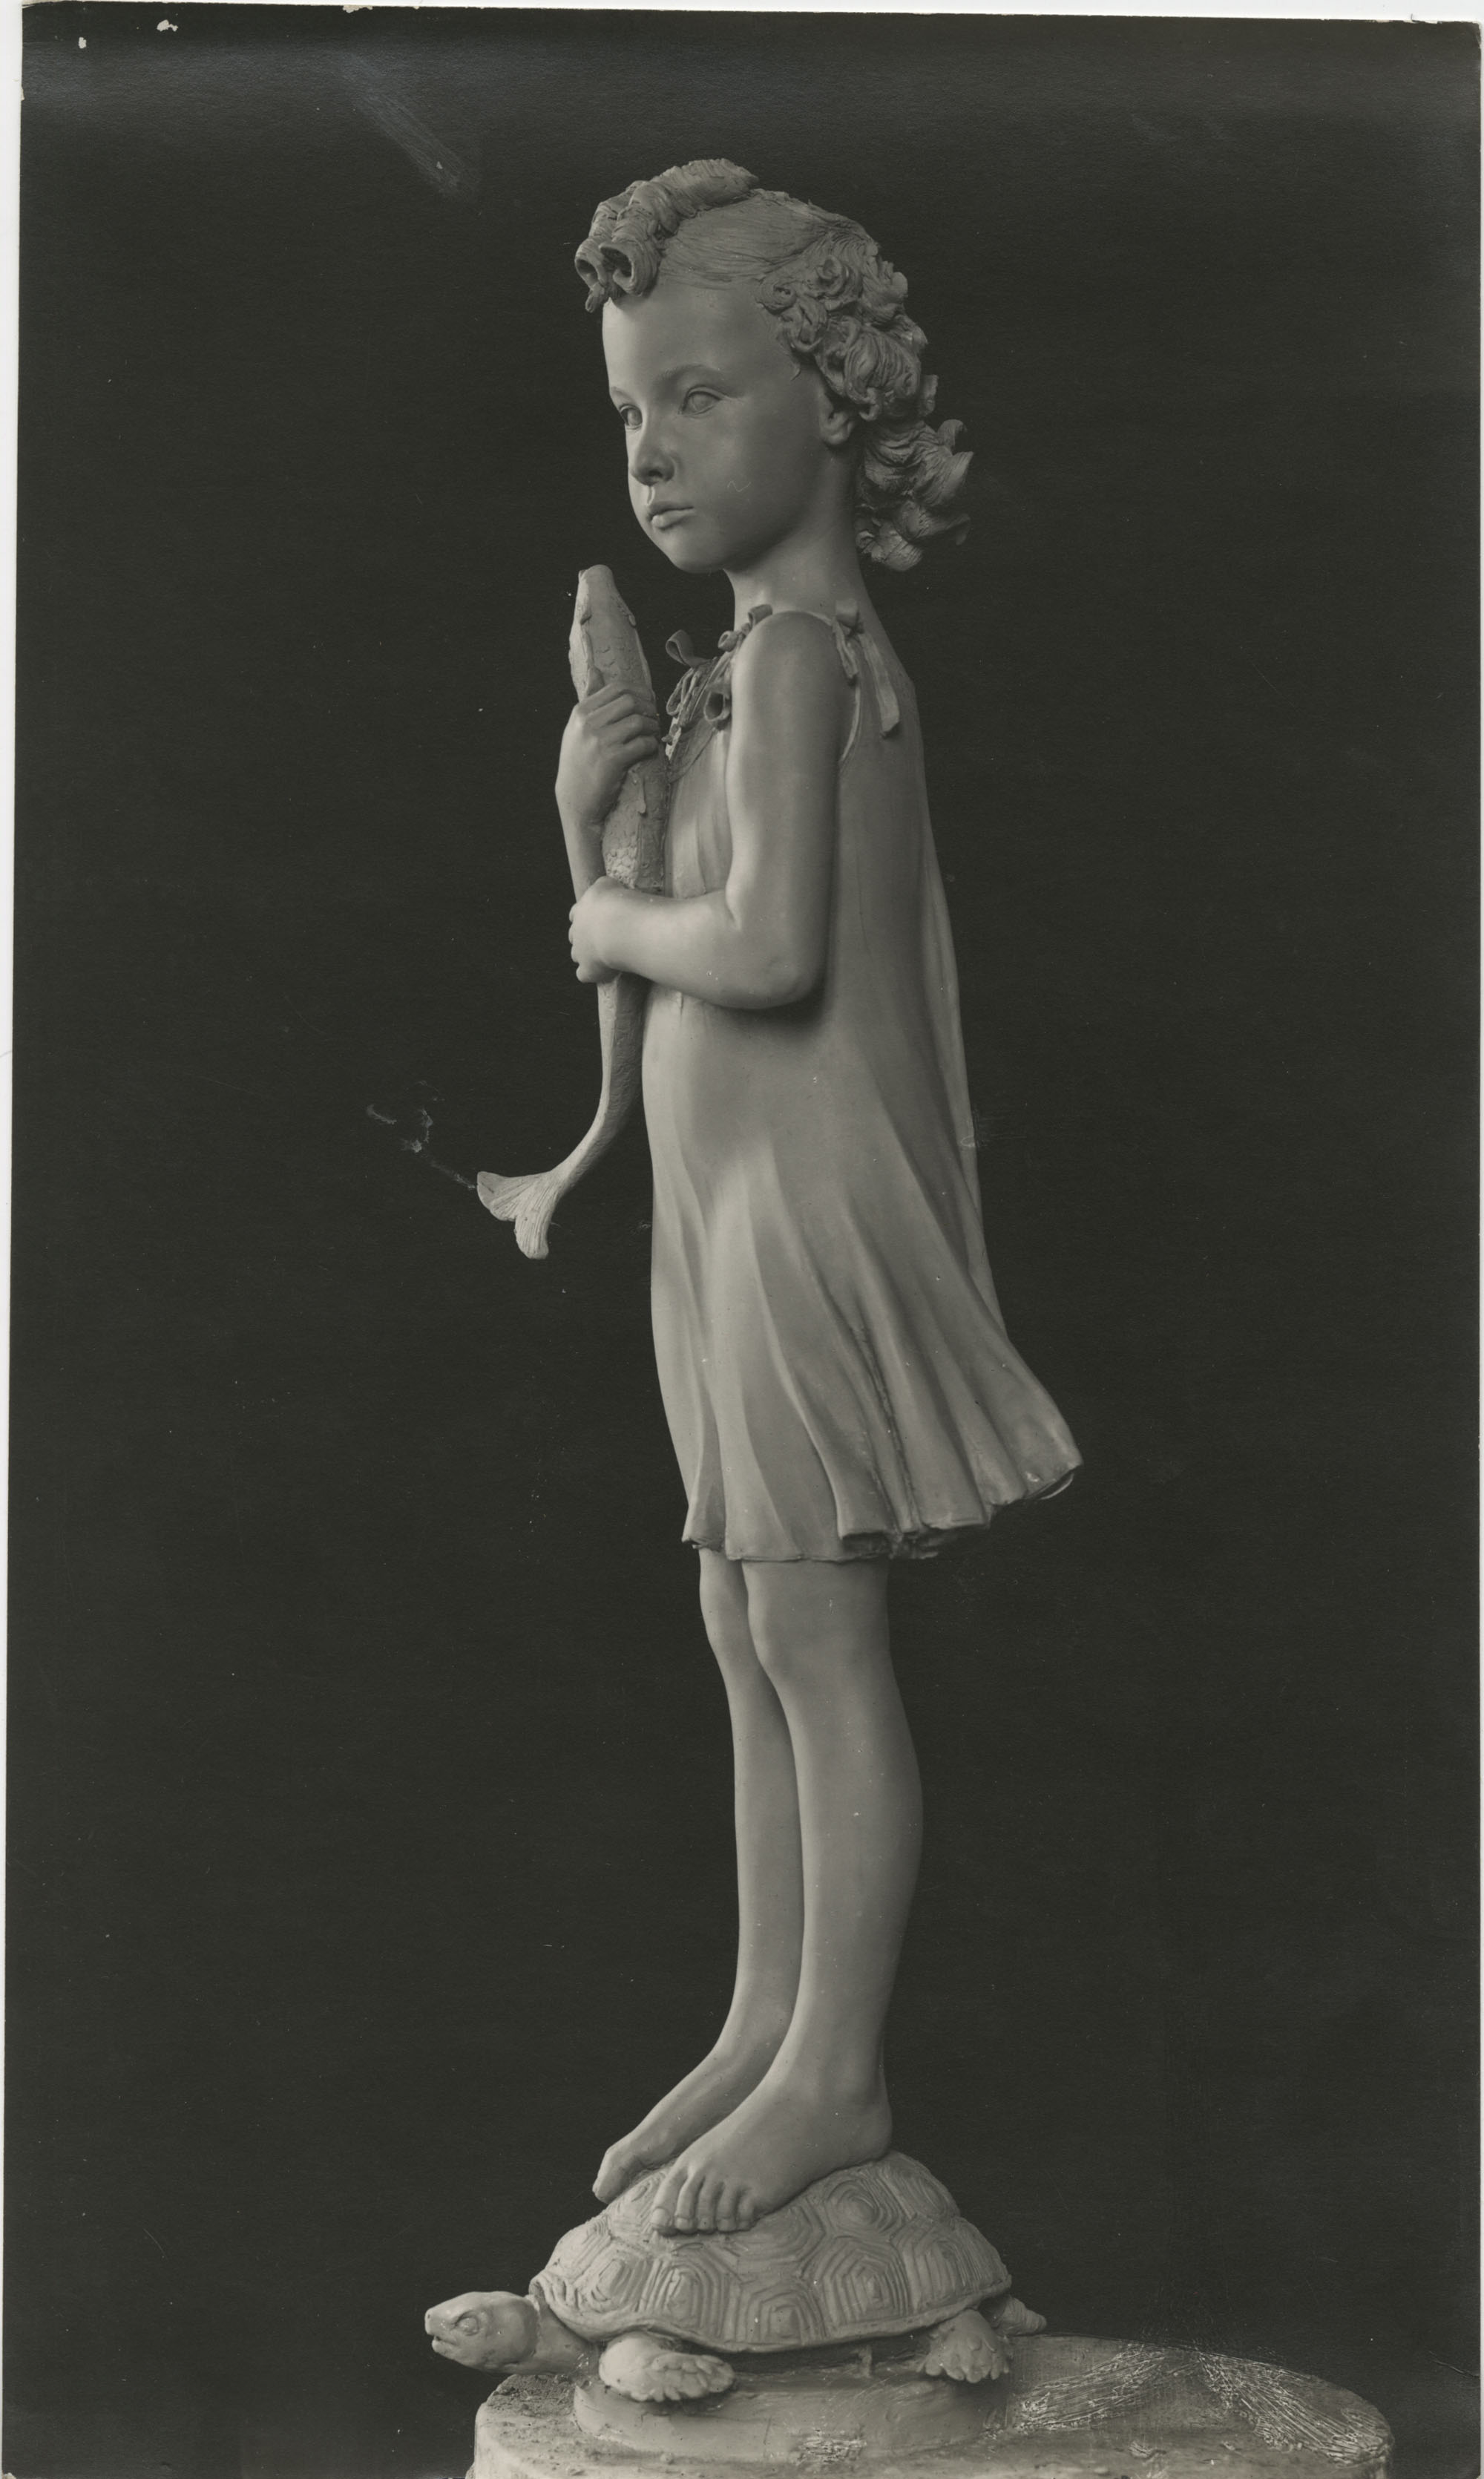 Sculpture of a child by Antonio Berti, Photograph 2